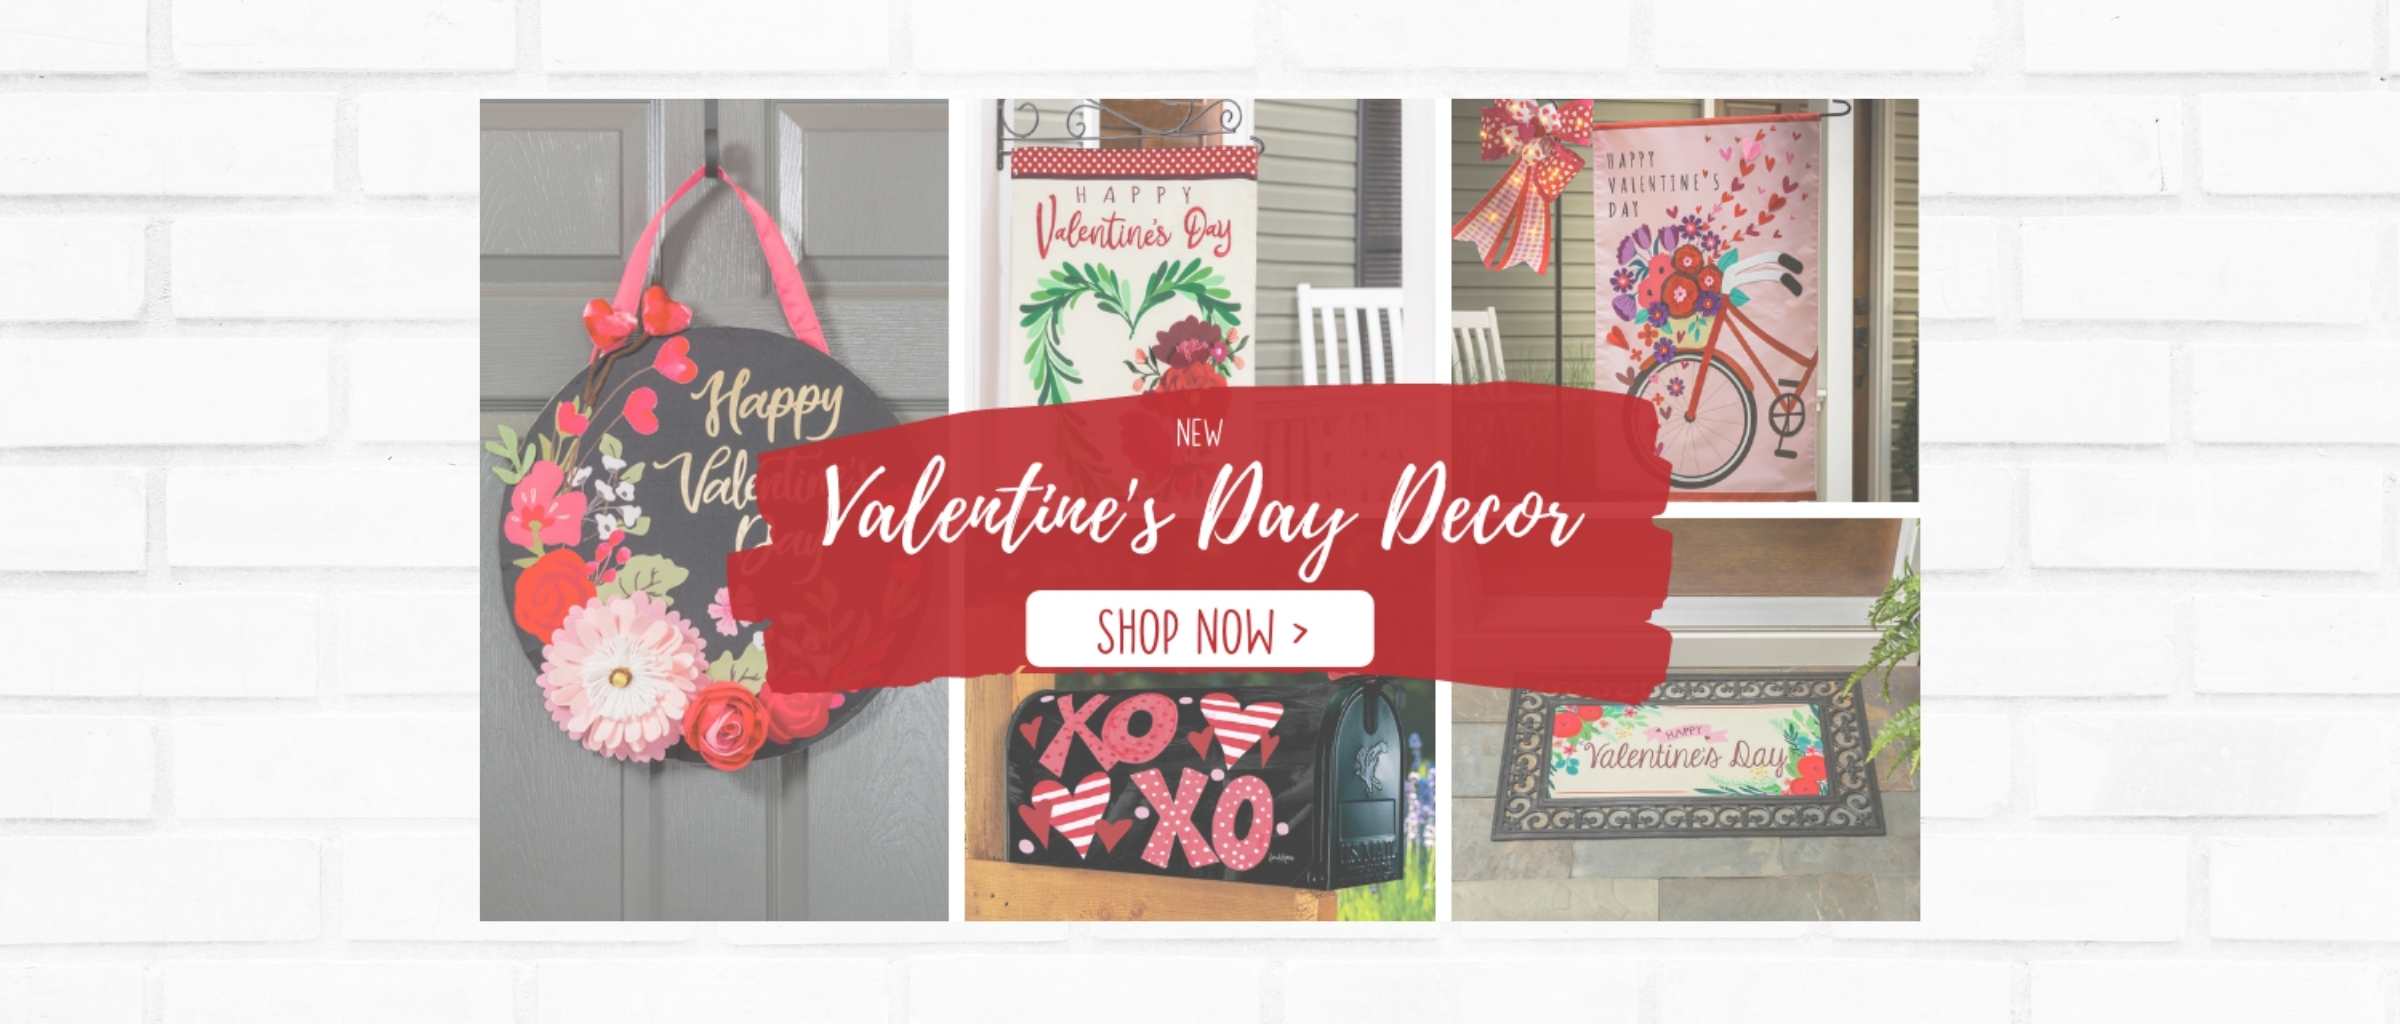 New Valentine's Day Decor is here. Shopw Now